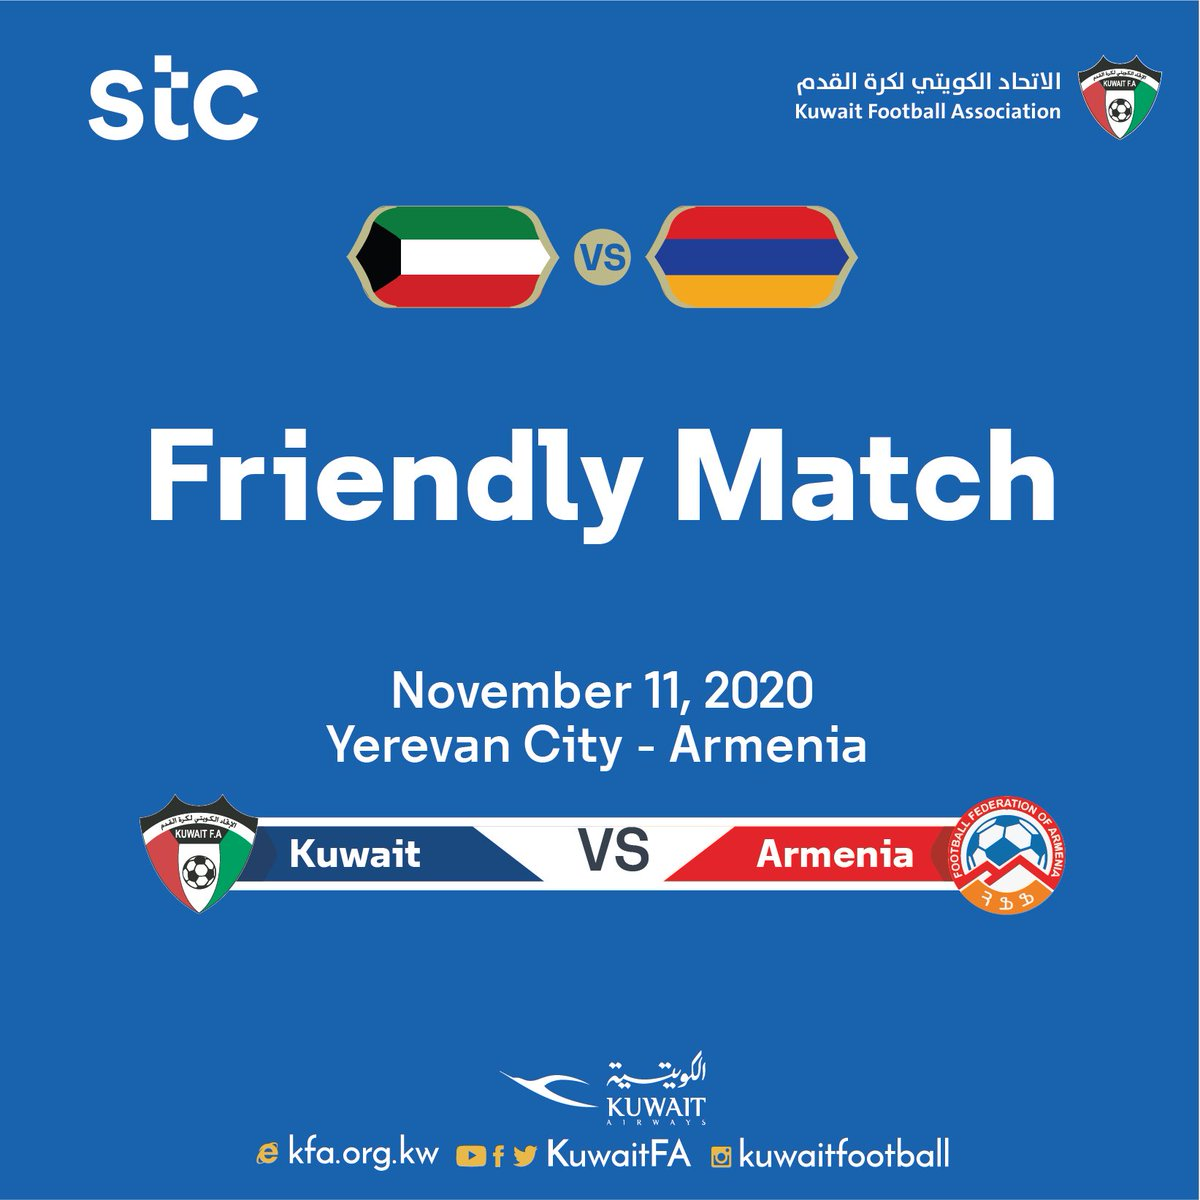 Kuwait FA has agreed with the Football Federation of Armenia to play an Int'l friendly match between Kuwait A National Team and Armenia A National Team in Yerevan City on November 11, 2020  #KuwaitFA https://t.co/zjV9DVylGl